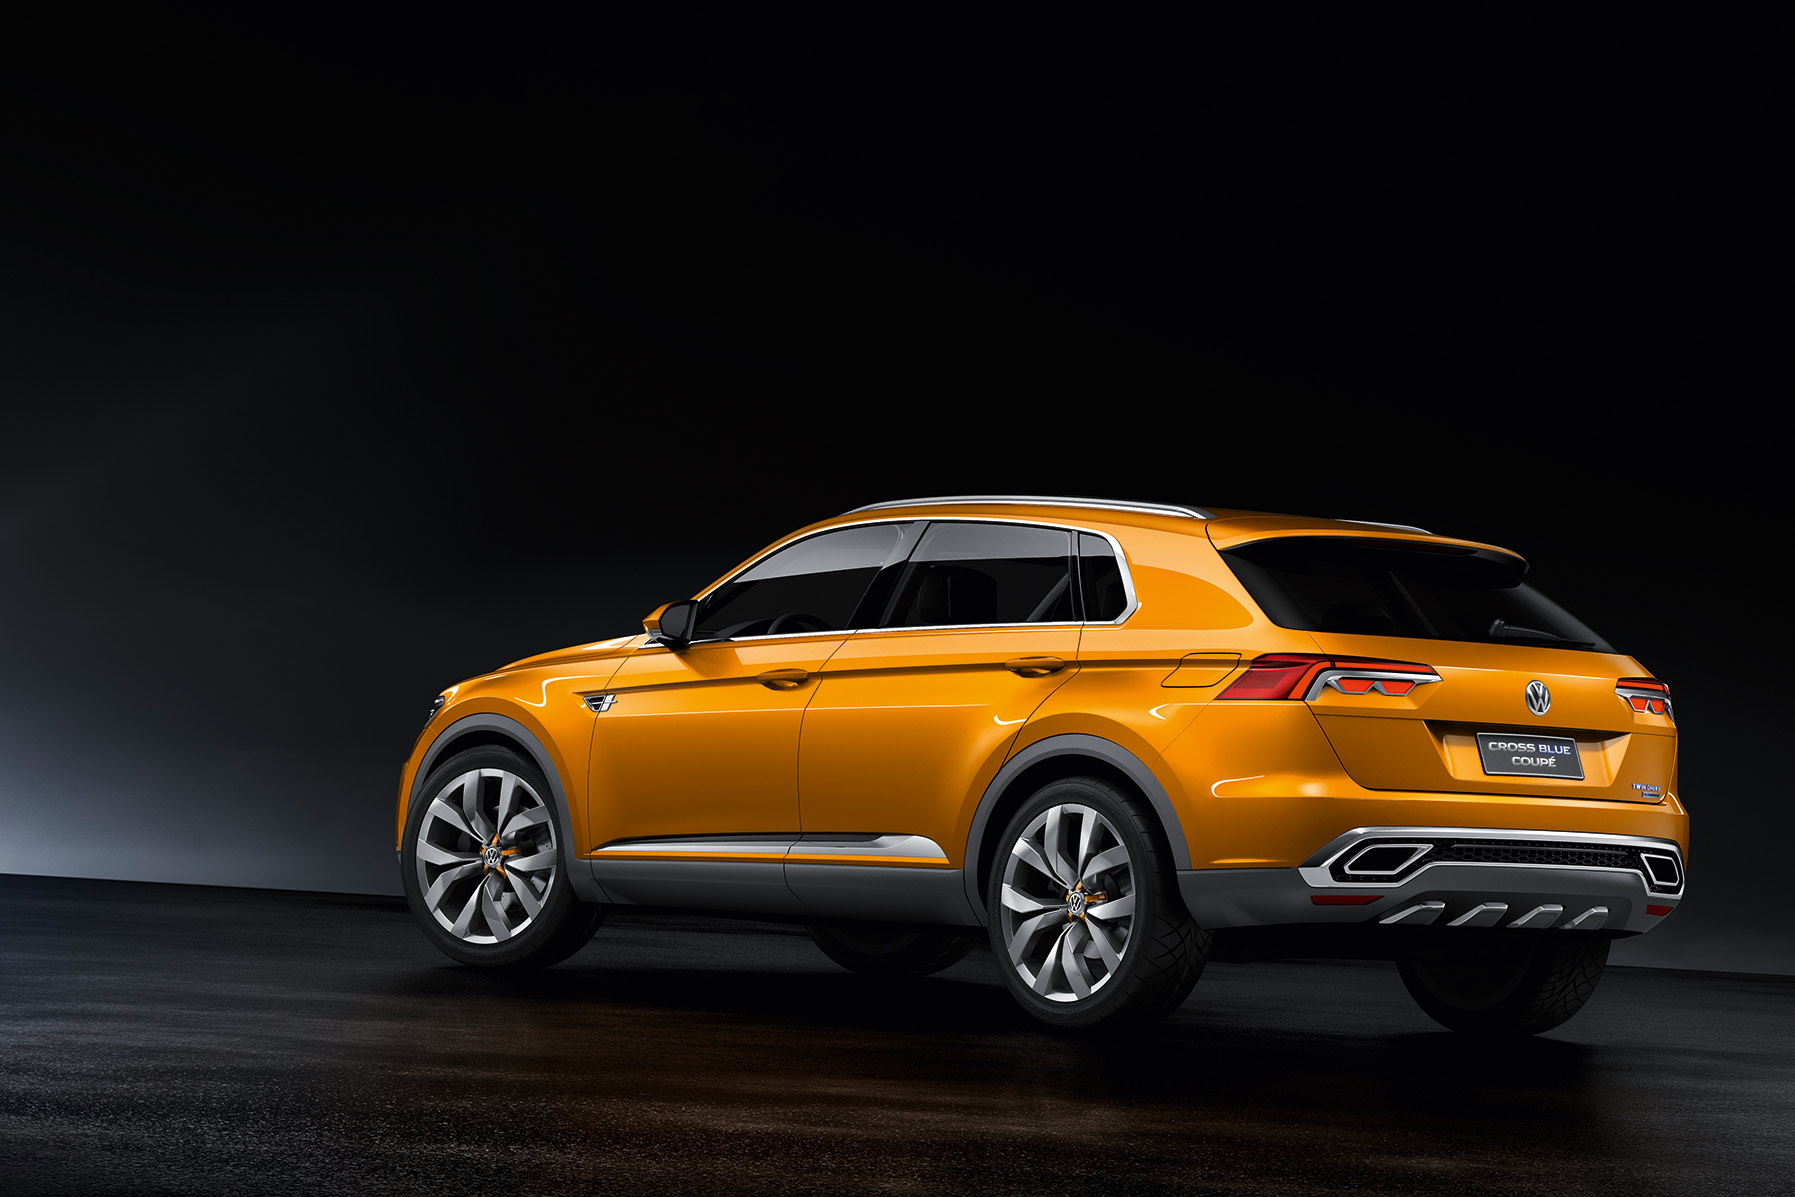 volkswagen-crossblue-coupe-concept-014